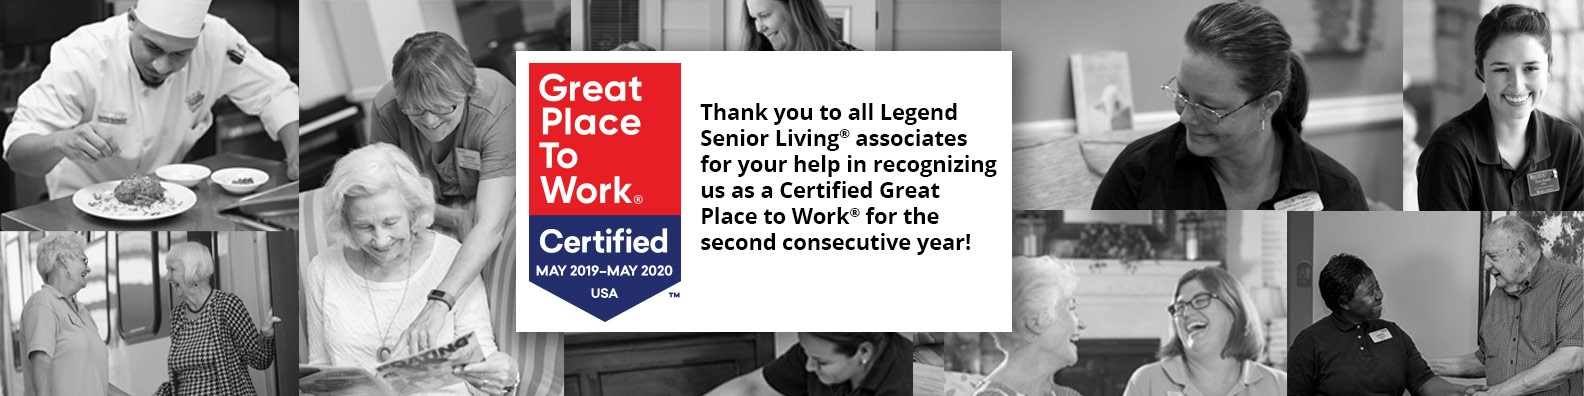 35f065c3e8673 Legend Senior Living™ | LinkedIn